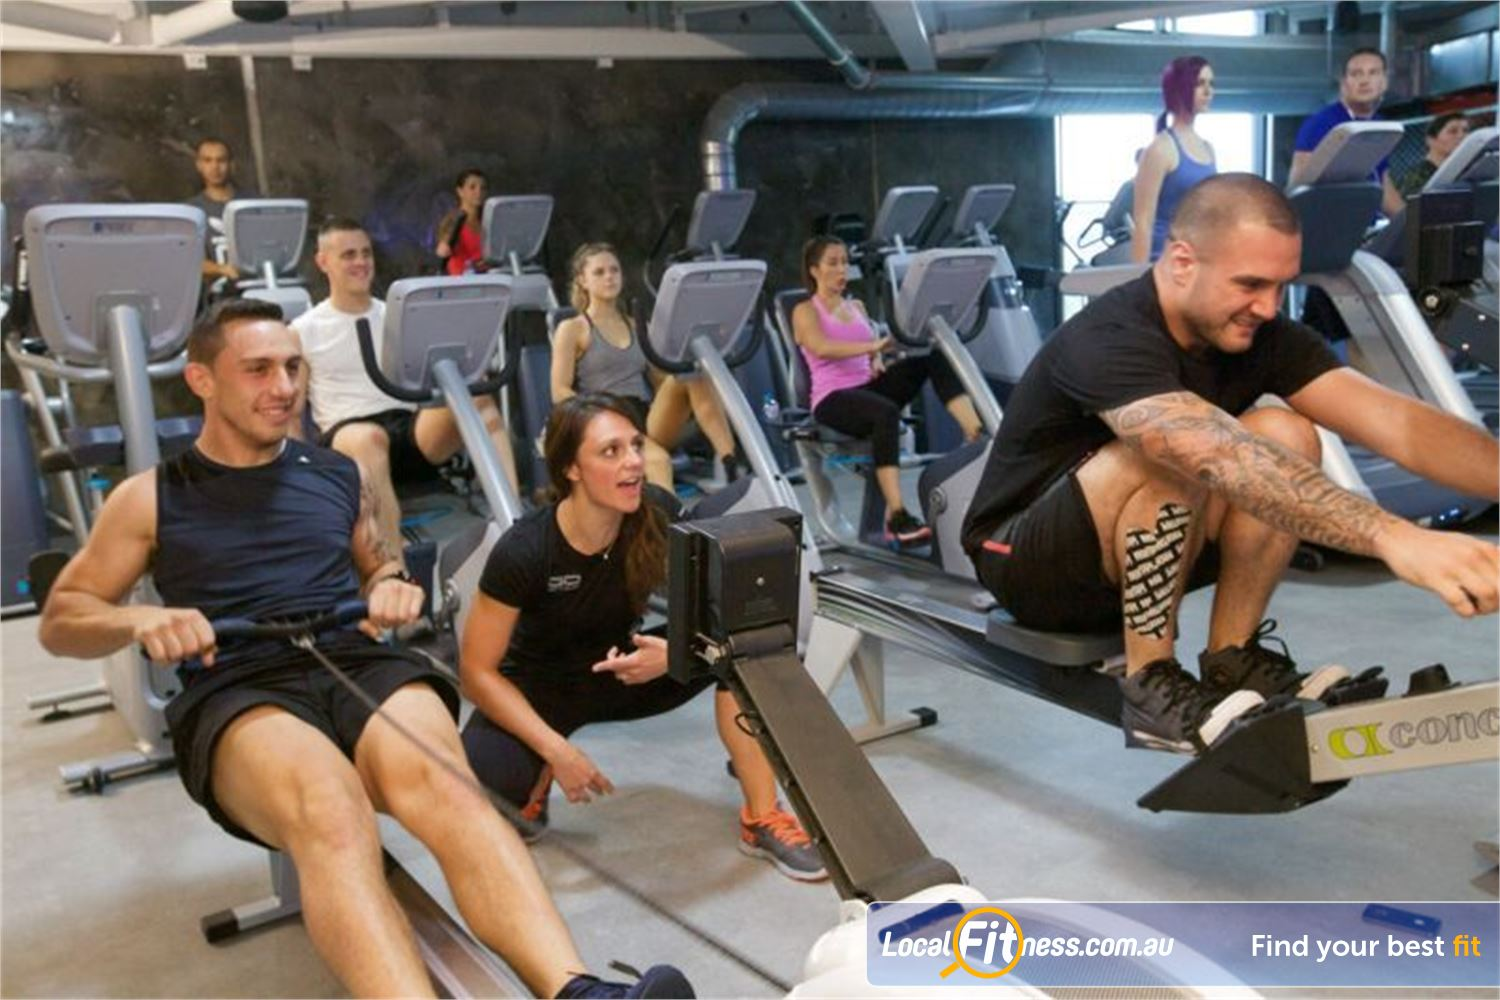 Goodlife Health Clubs Beenleigh Beenleigh personal training is a great way to jumpstart your fitness.